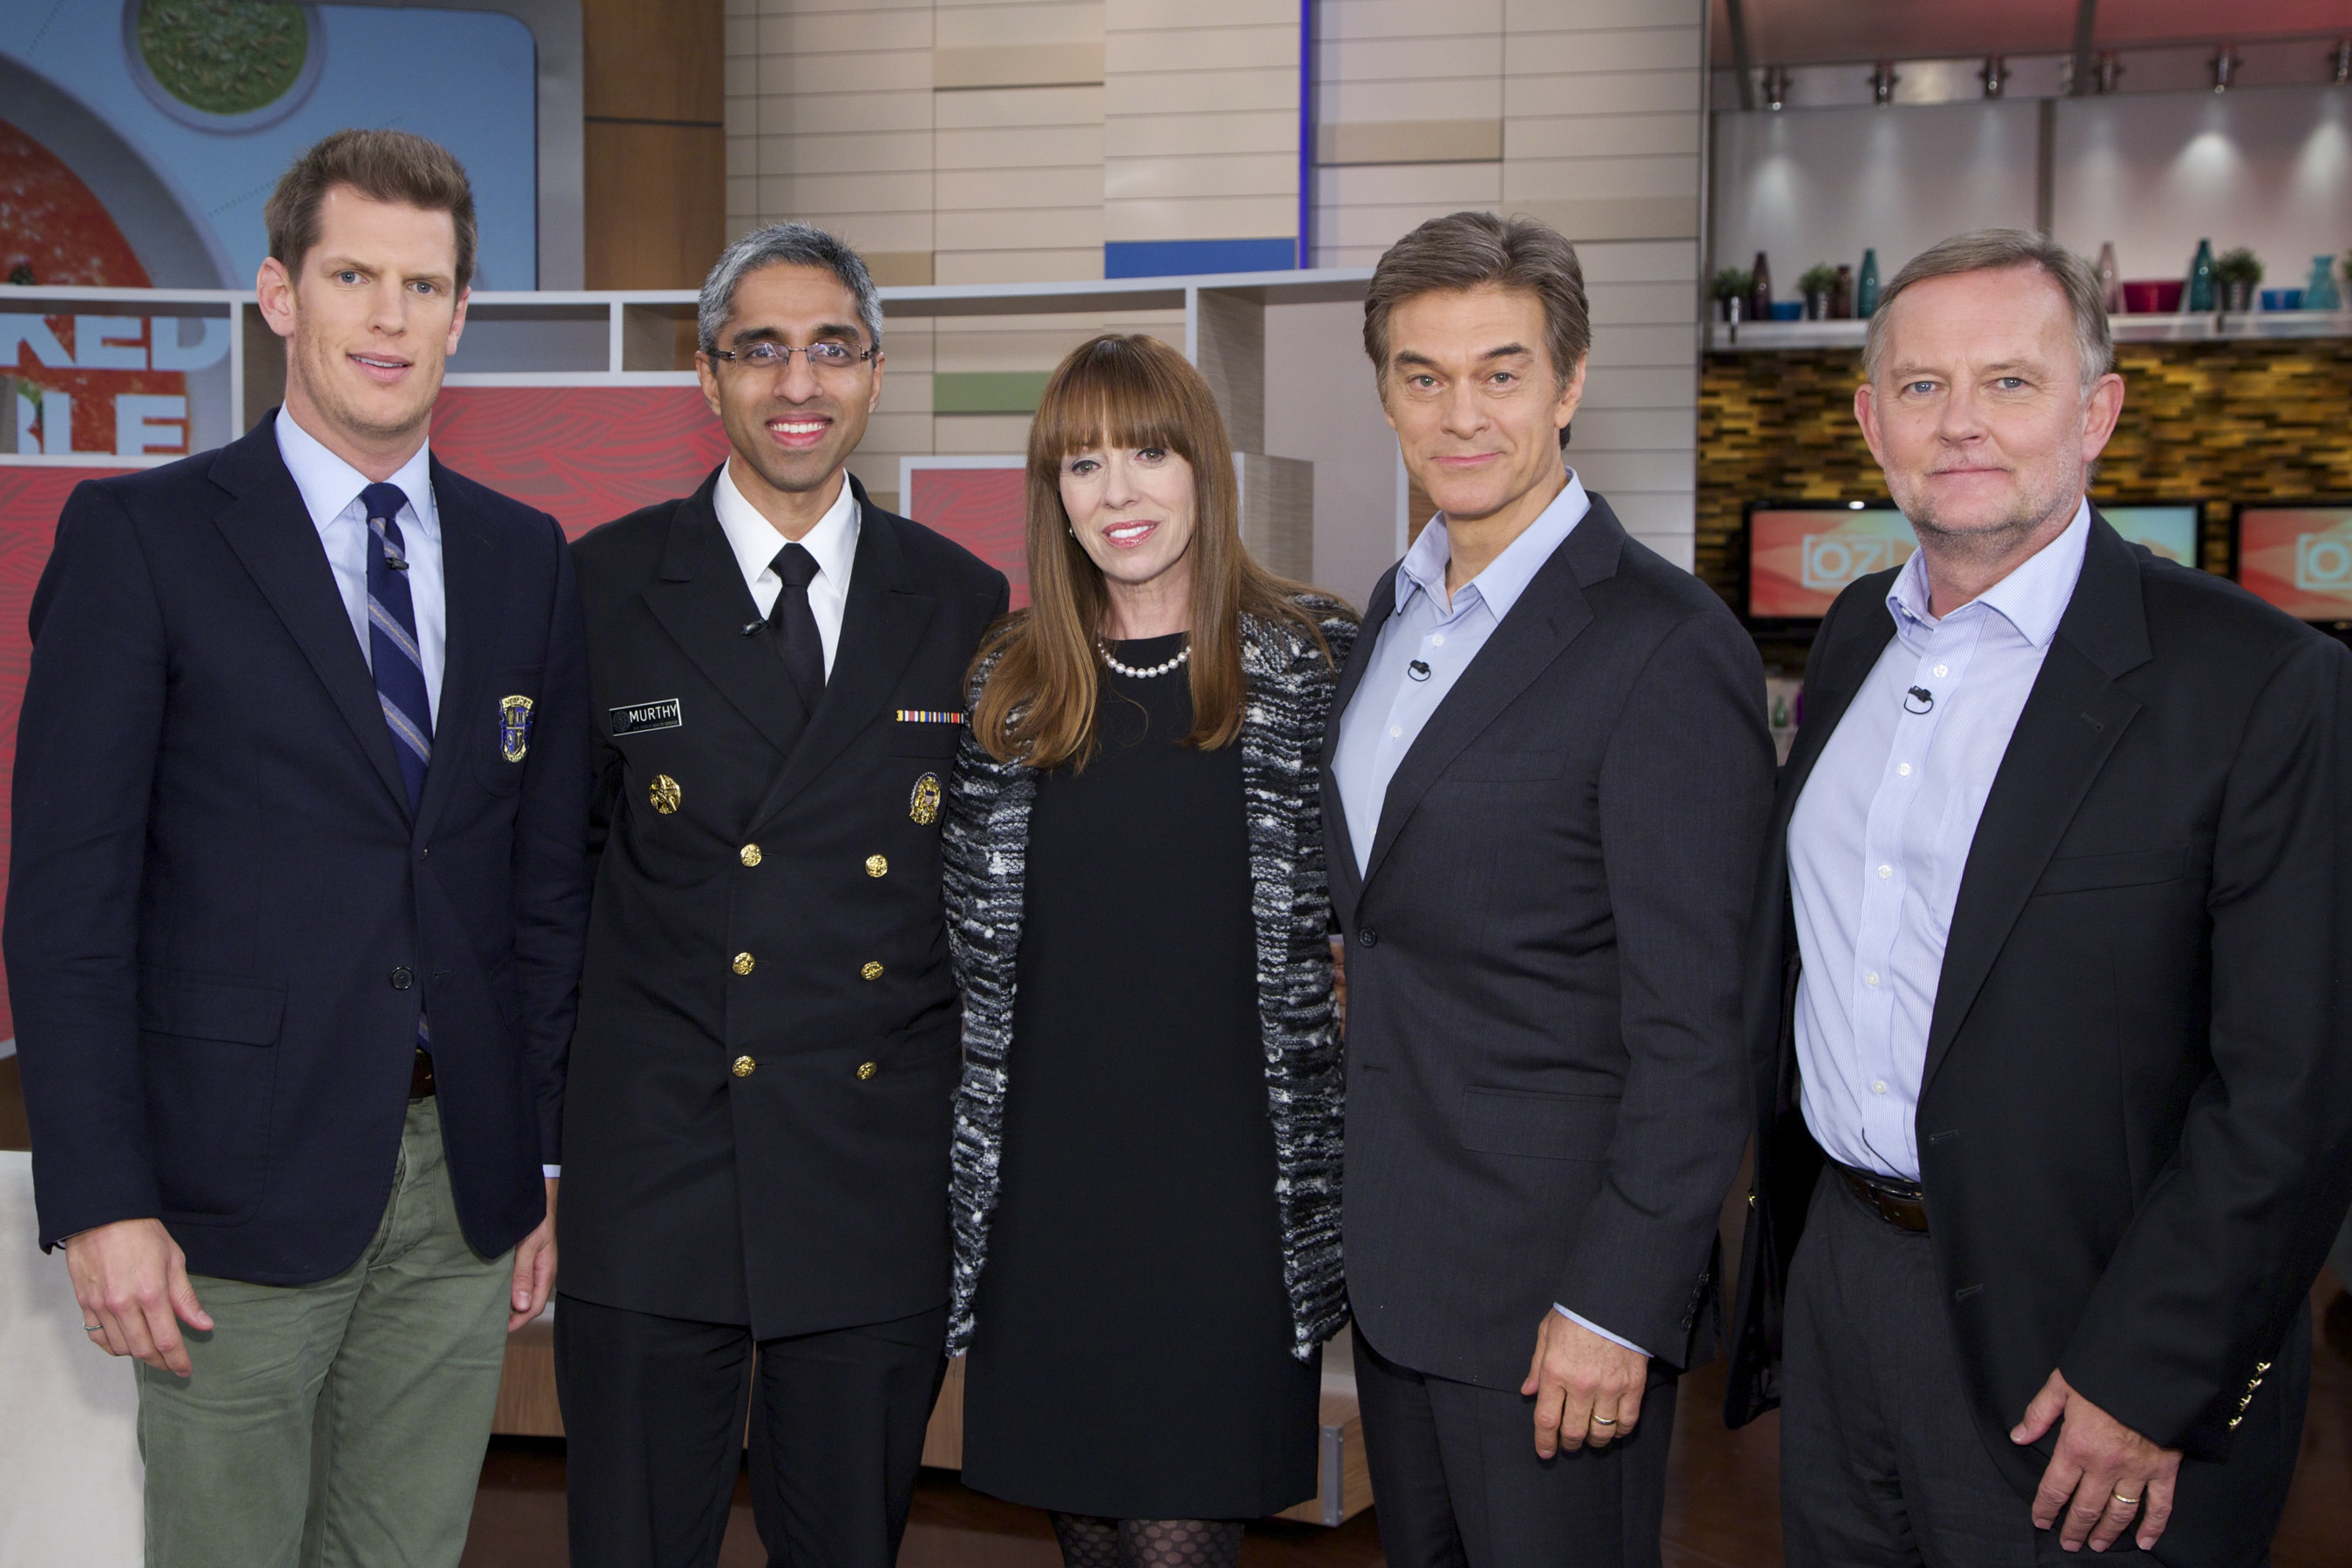 The left to right in the photo is: Jamison Monroe (Drugs Over Dinner), U.S. Surgeon General Vivek Murthy M.D., Mackenzie Phillips, Actress, Dr. Oz, Host, and Jim Hood (Facing Addiction)